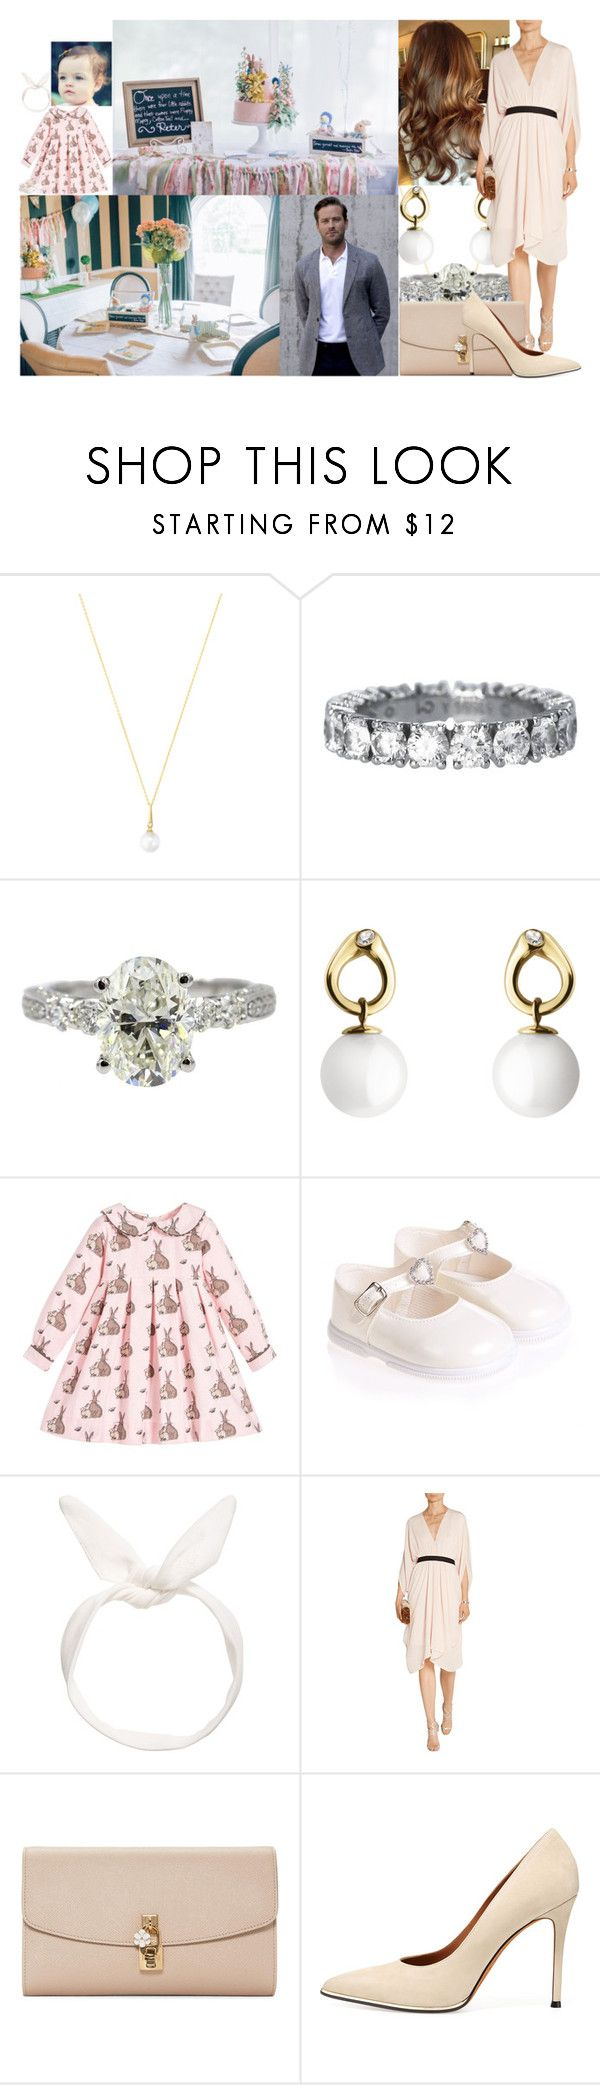 """""""Hosting Josephine's first birthday party at Randersgatan"""" by swedish-princess ❤ liked on Polyvore featuring Georg Jensen, Rachel Riley, Issa, Dolce&Gabbana and Givenchy"""